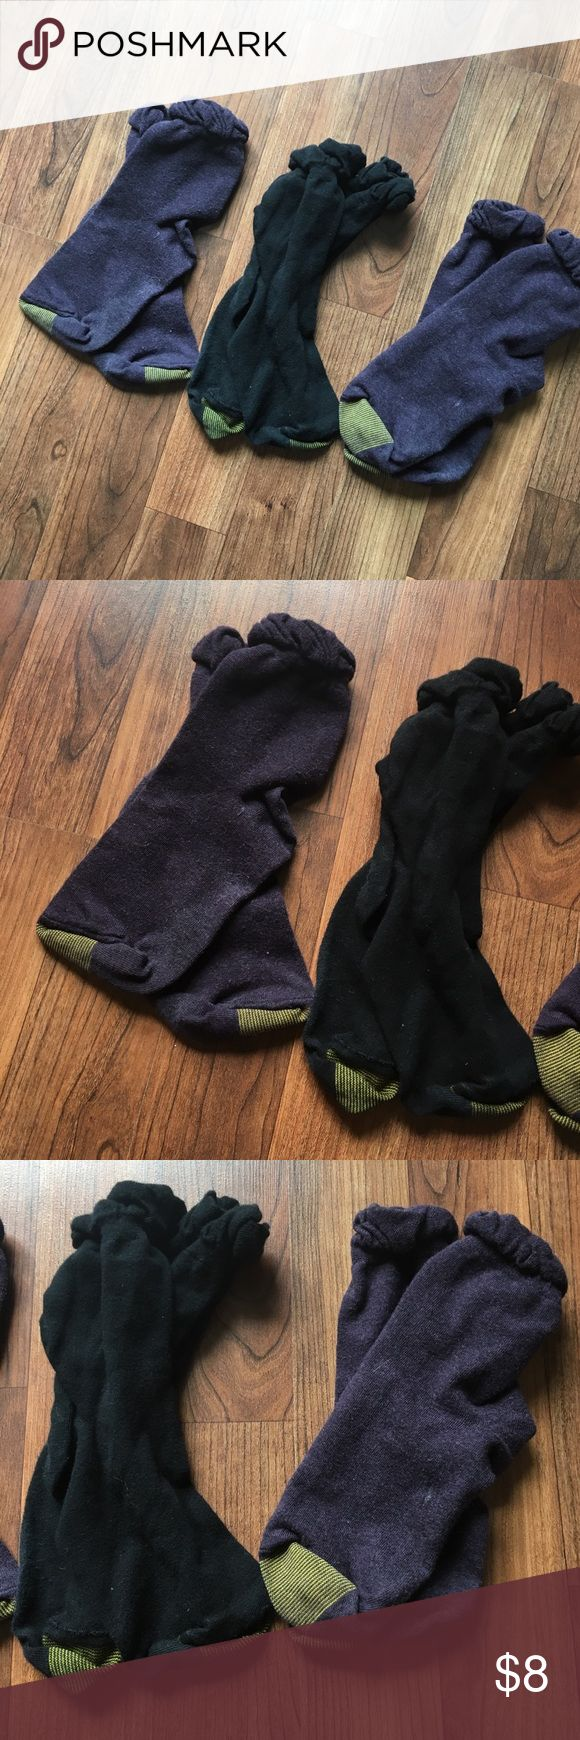 3 Pairs Gold Toe Socks w/ Ruffle 3 pairs gold toe socks, Women's size large, fits shoe size 9-11. Like new, hardly worn. Each pair has a cute ruffle at the top. 2 purple pairs, 1 black pair. Sold all together. Gold Toe Other